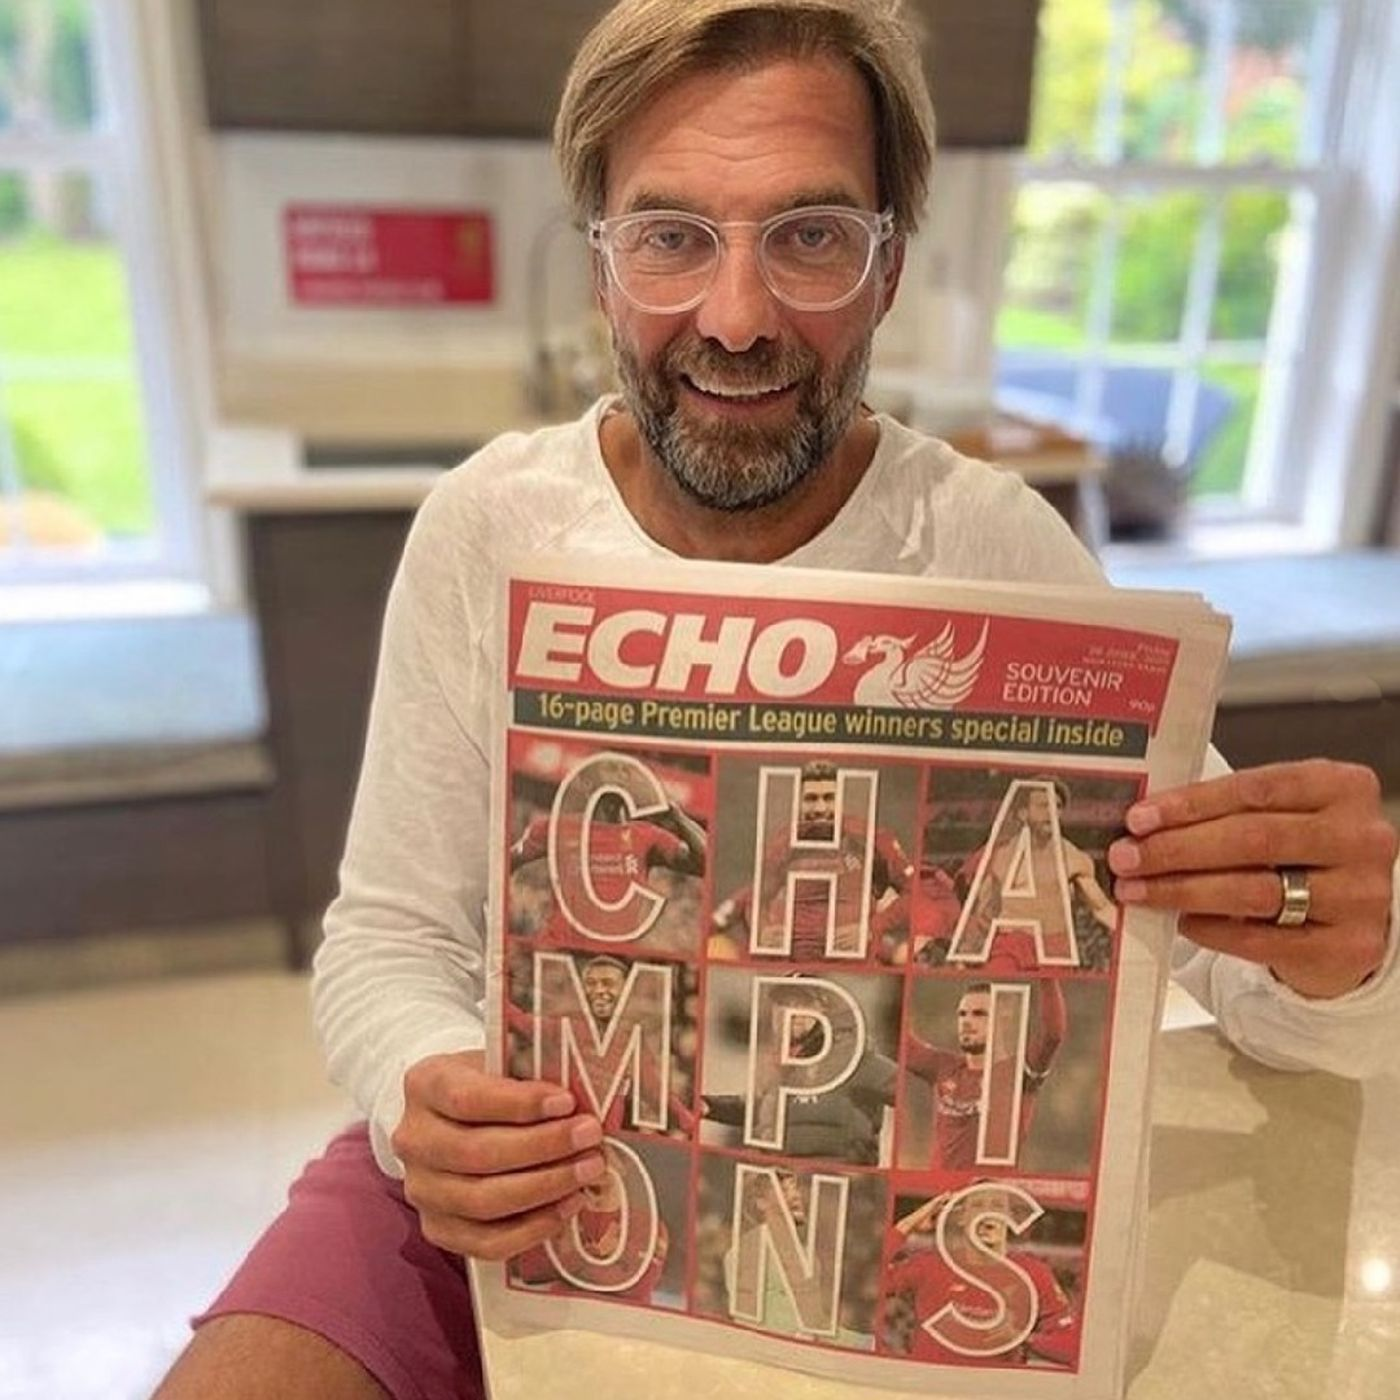 Blood Red: Jurgen Klopp's open letter to Liverpool supporters after Premier League title win | Man City await at the Etihad